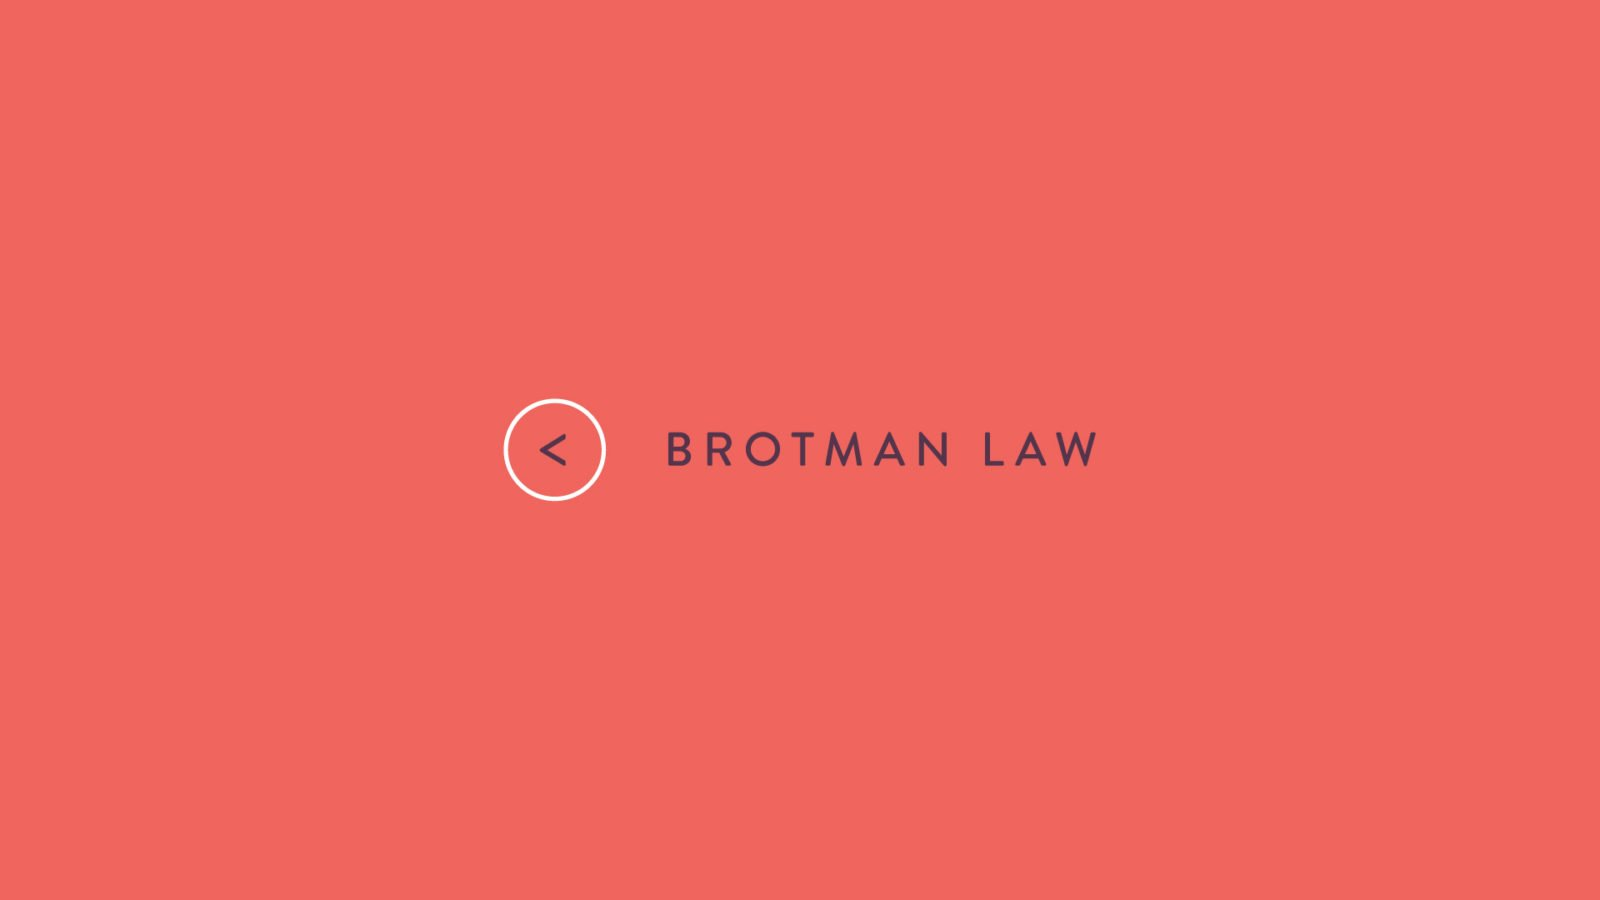 An Identity for Brotman Law By Bullhorn Creative